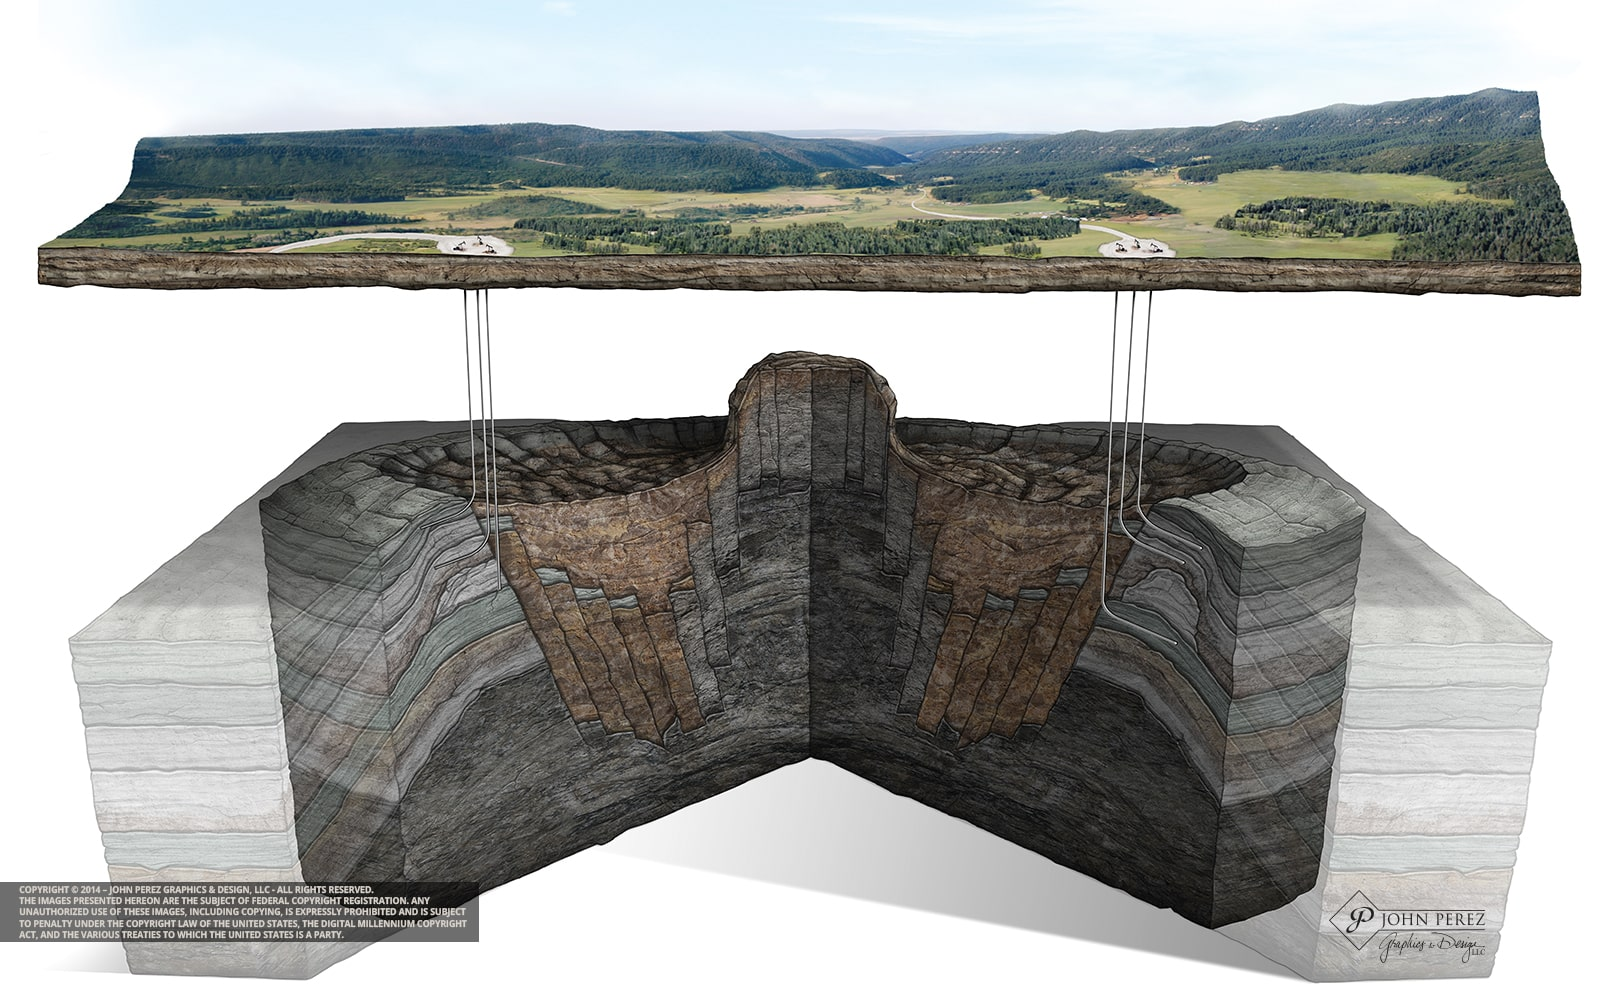 Asteroid Impact Crater Oil Gas Illustration, asteroid, john perez graphics, oil gas schematic